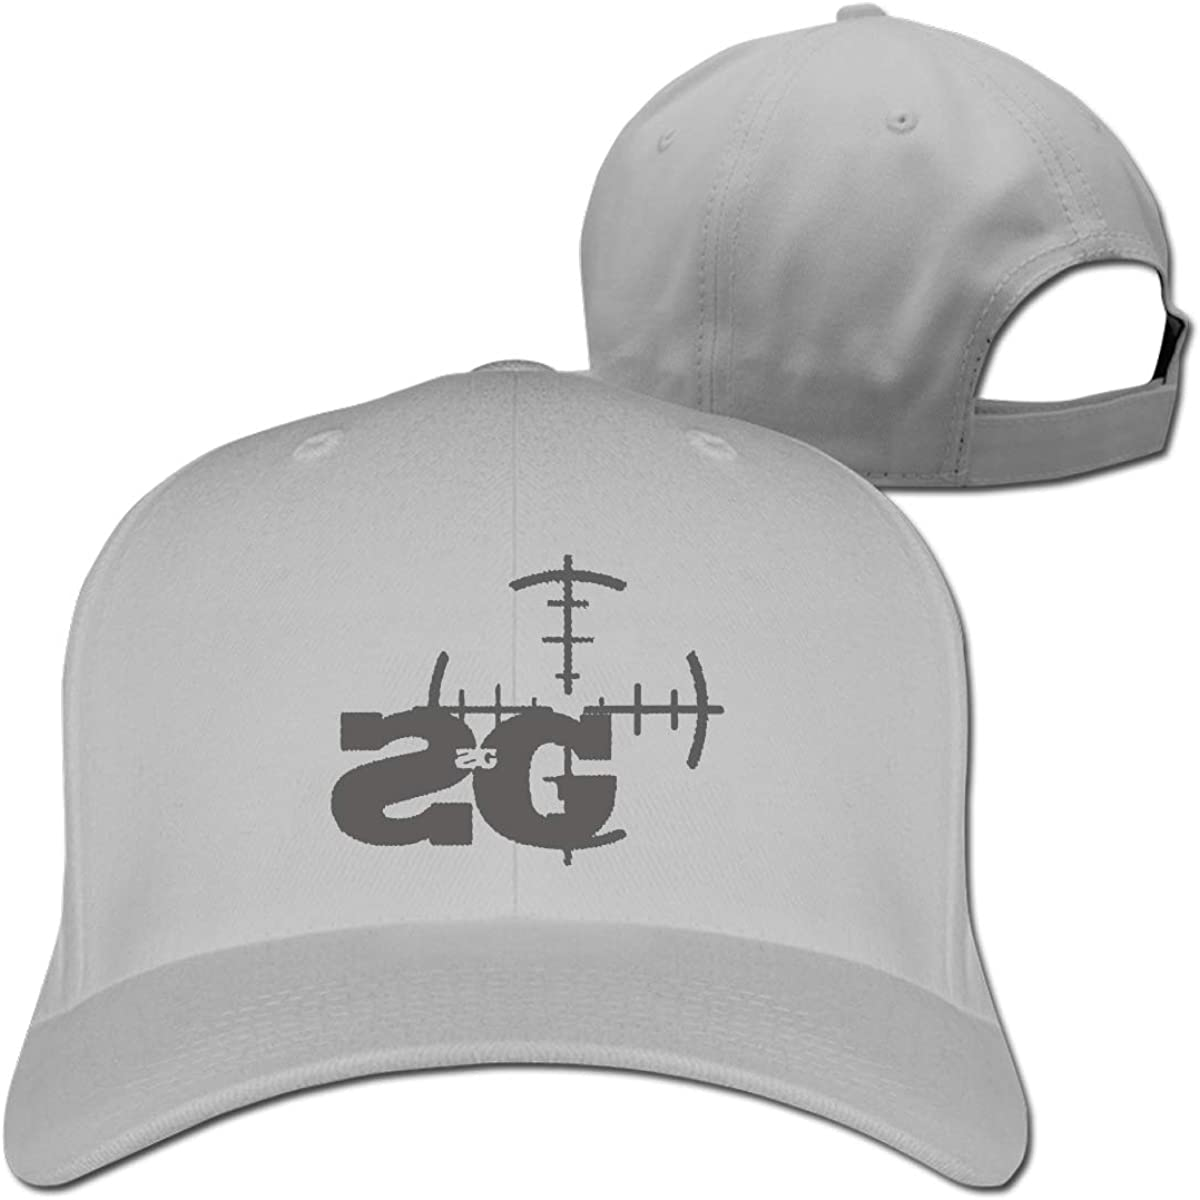 Sniper Gang 2G Fashion Adjustable Cotton Baseball Caps Trucker Driver Hat Outdoor Cap Gray